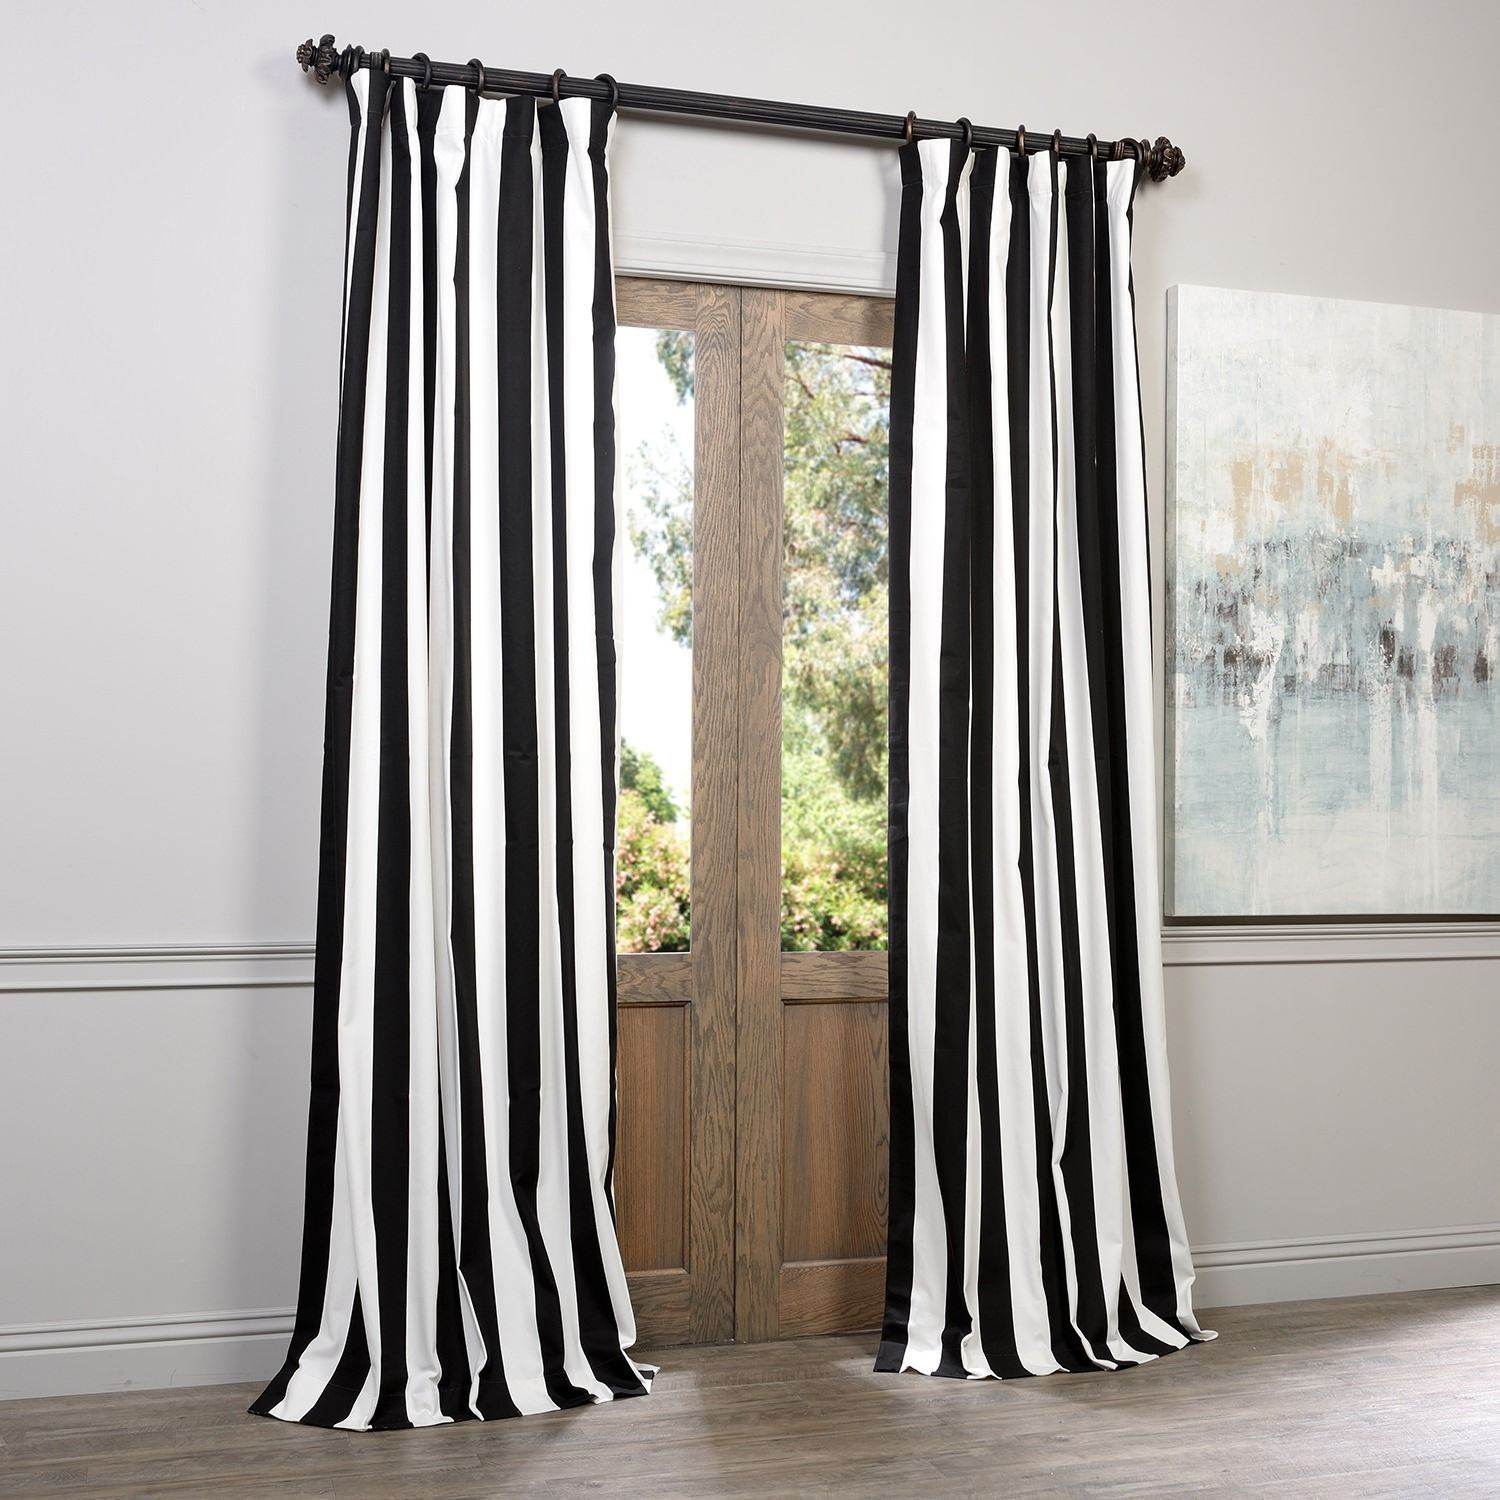 Cotton Curtain Panels This Black And White Cotton Curtain Panel Will Make Any Decor More